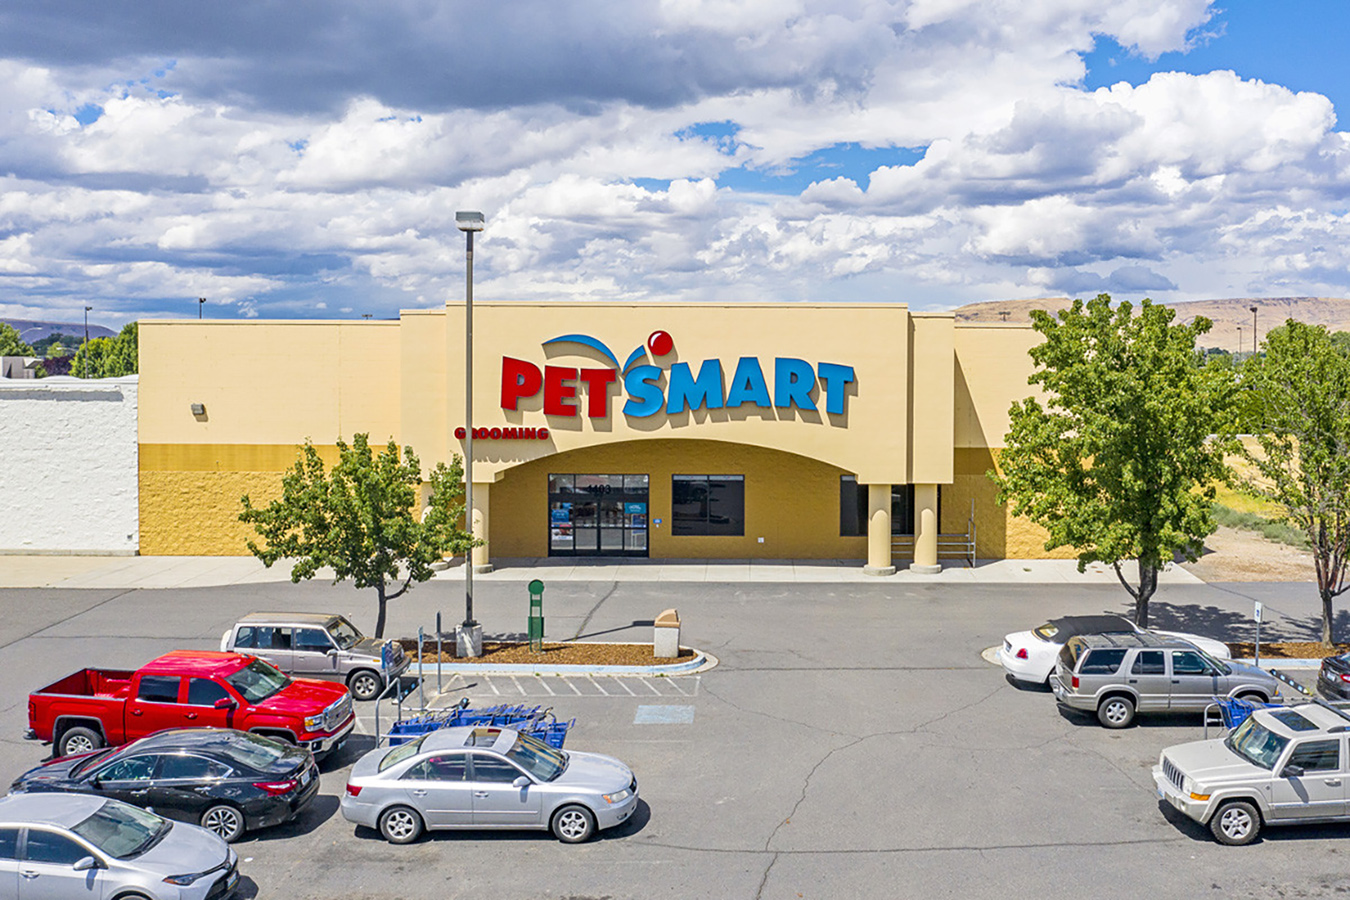 Hanley Investment Group Arranges Sale of Single-Tenant PetSmart in Yakima County, Washington for $3.3 Million and a 6.35% Cap Rate